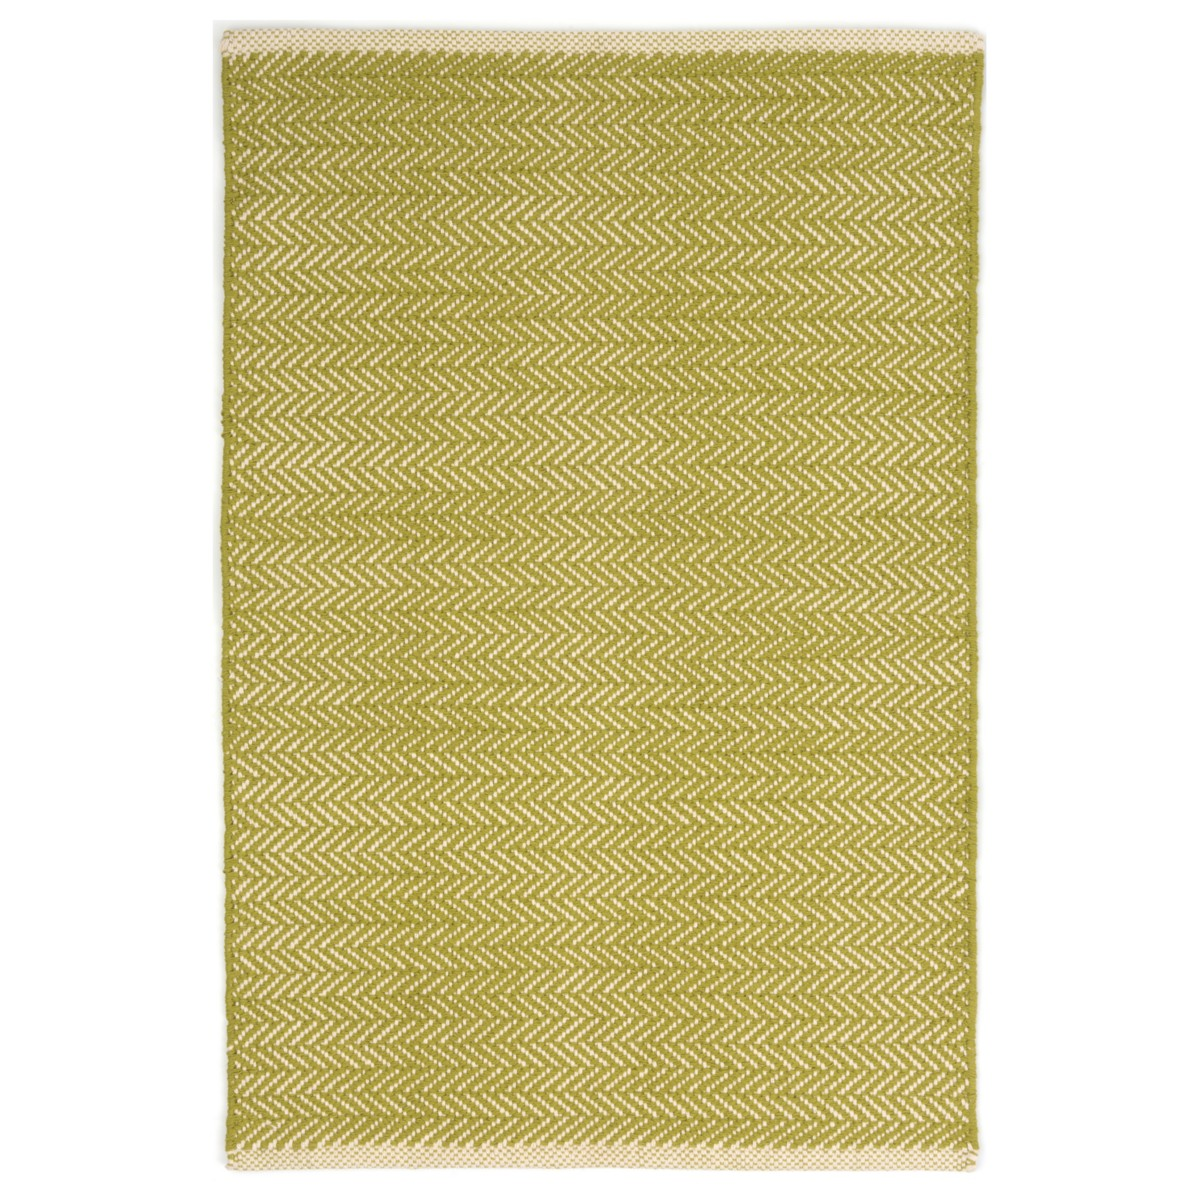 Herringbone Cotton Rug - Citrus